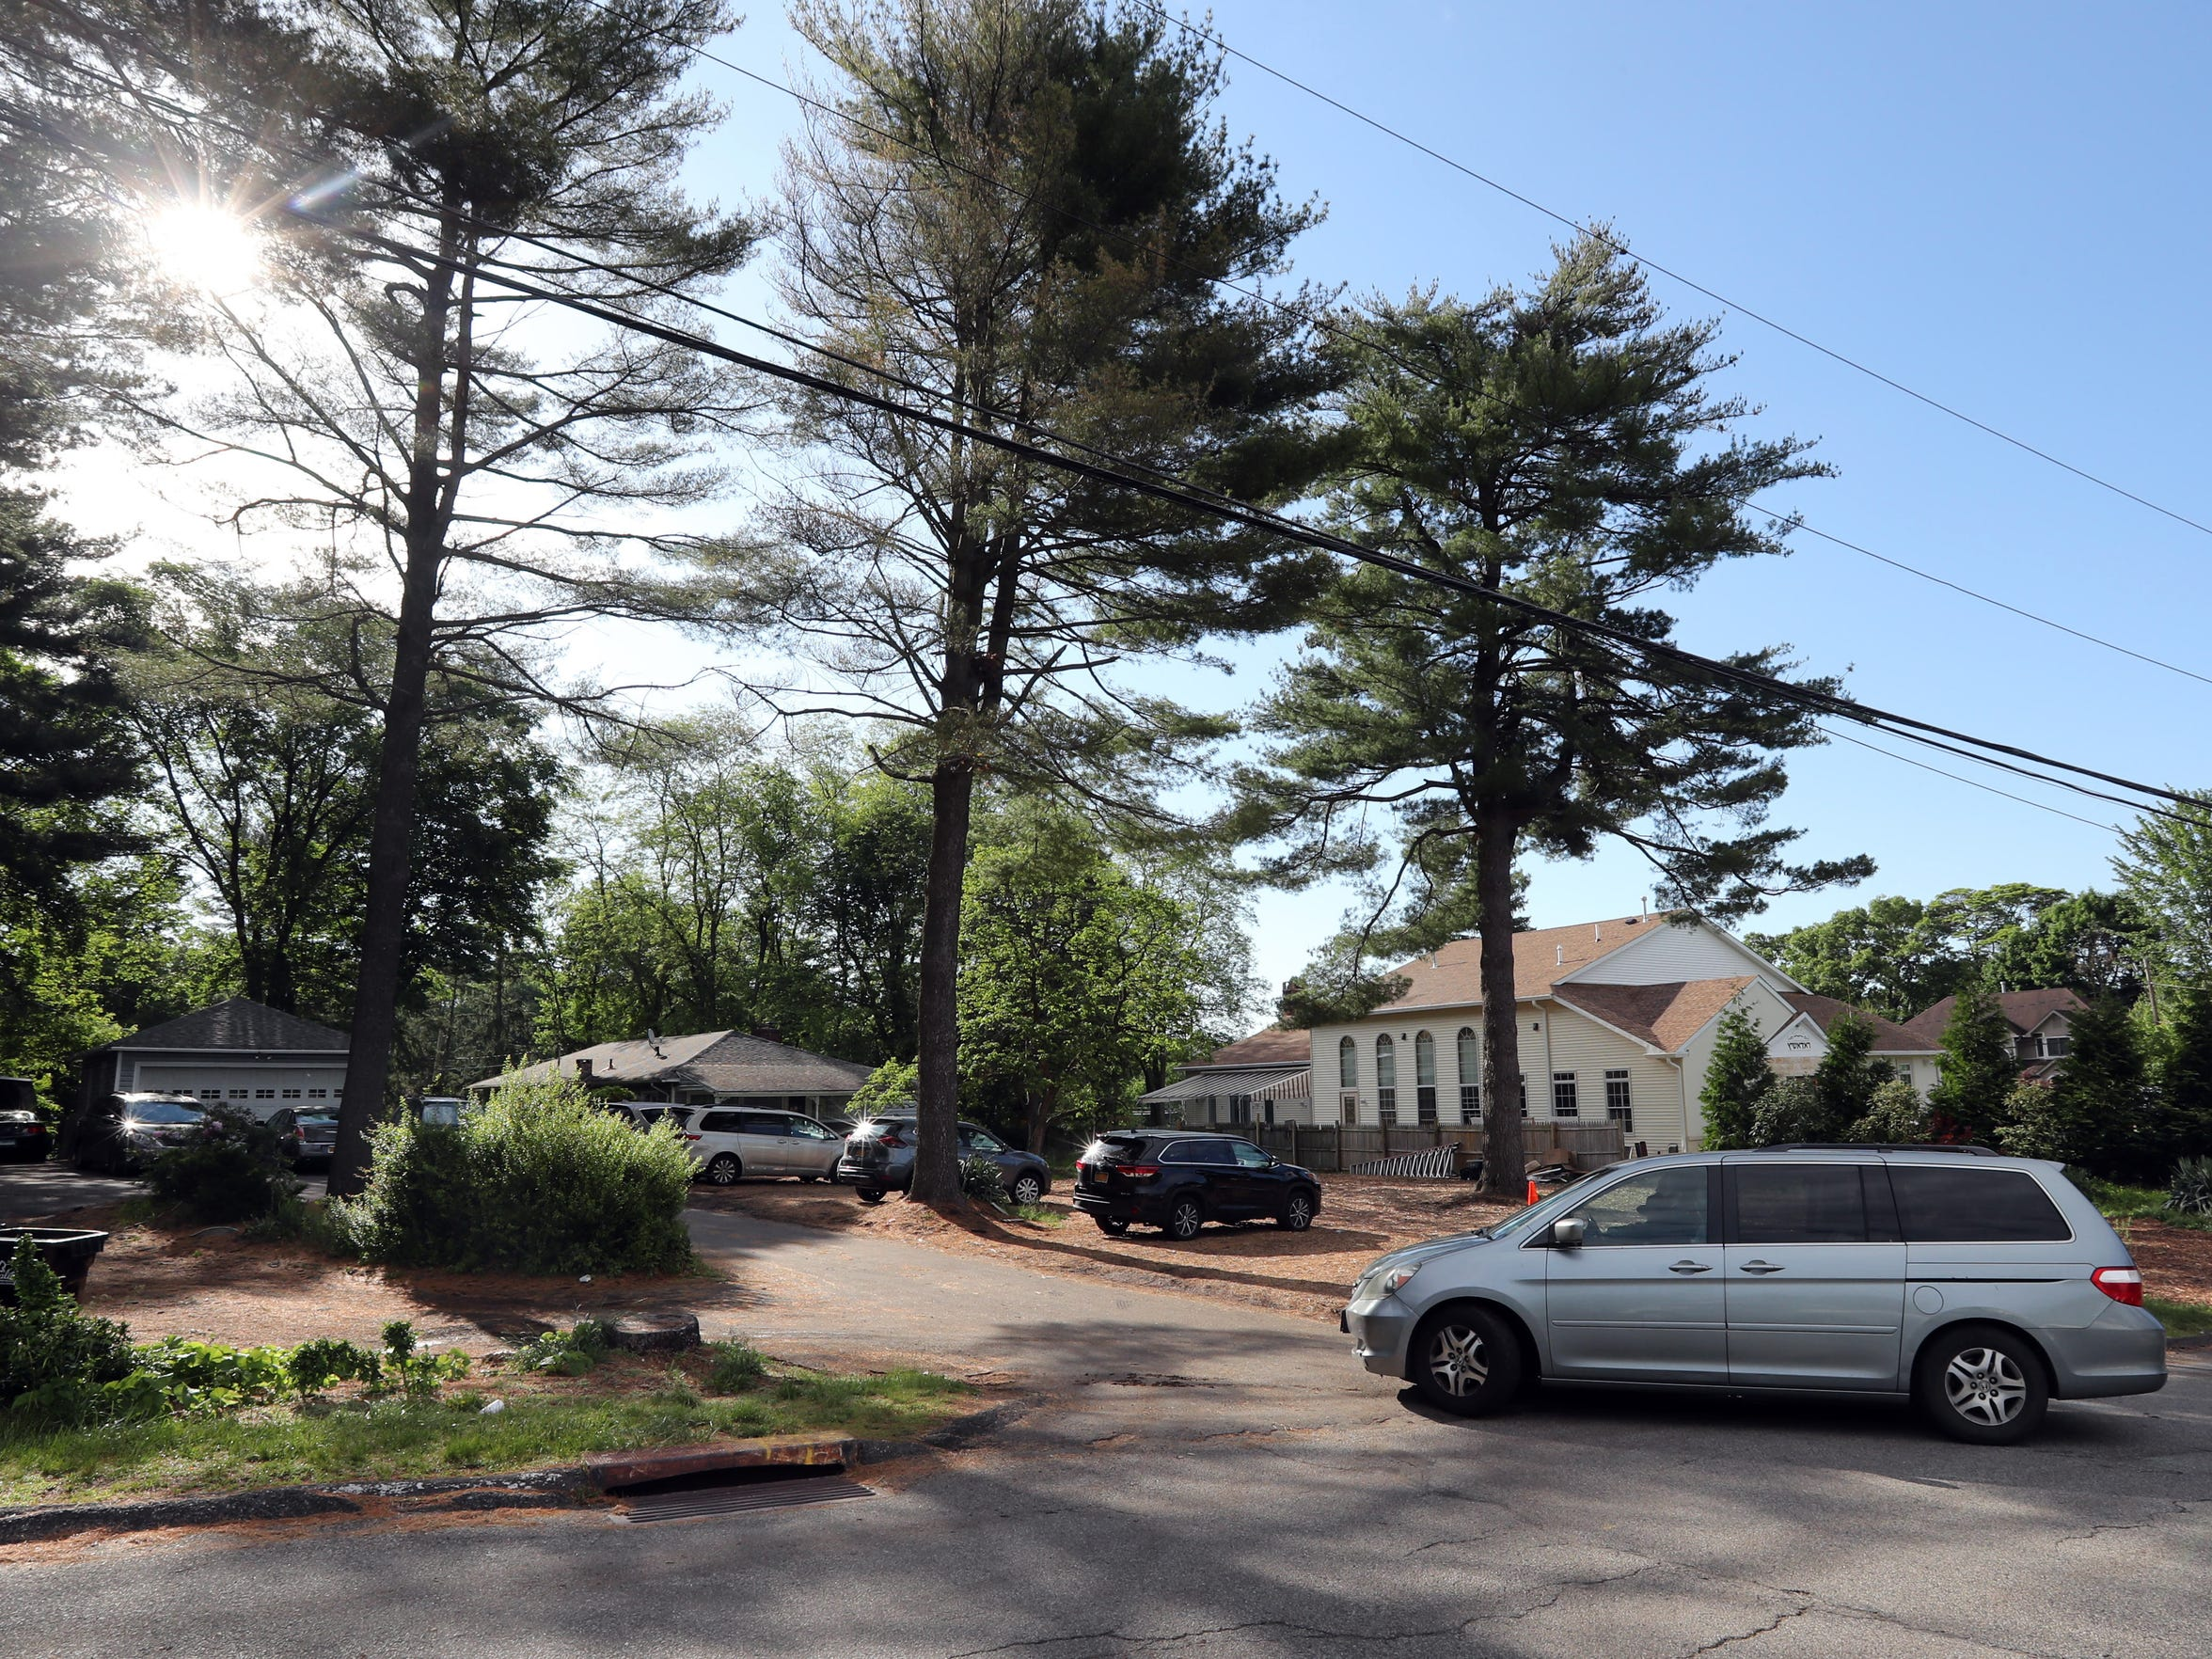 A minivan backs out of a gravel parking lot next to Bais Hamedrash Radashitz, an Orthodox synagogue on Echo Ridge Road in Airmont during the morning hours of June 5, 2018. Congregants of the synagogue park in this auxiliary lot and on the street when the parking lot at the synagogue is filled during morning worship six days a week.